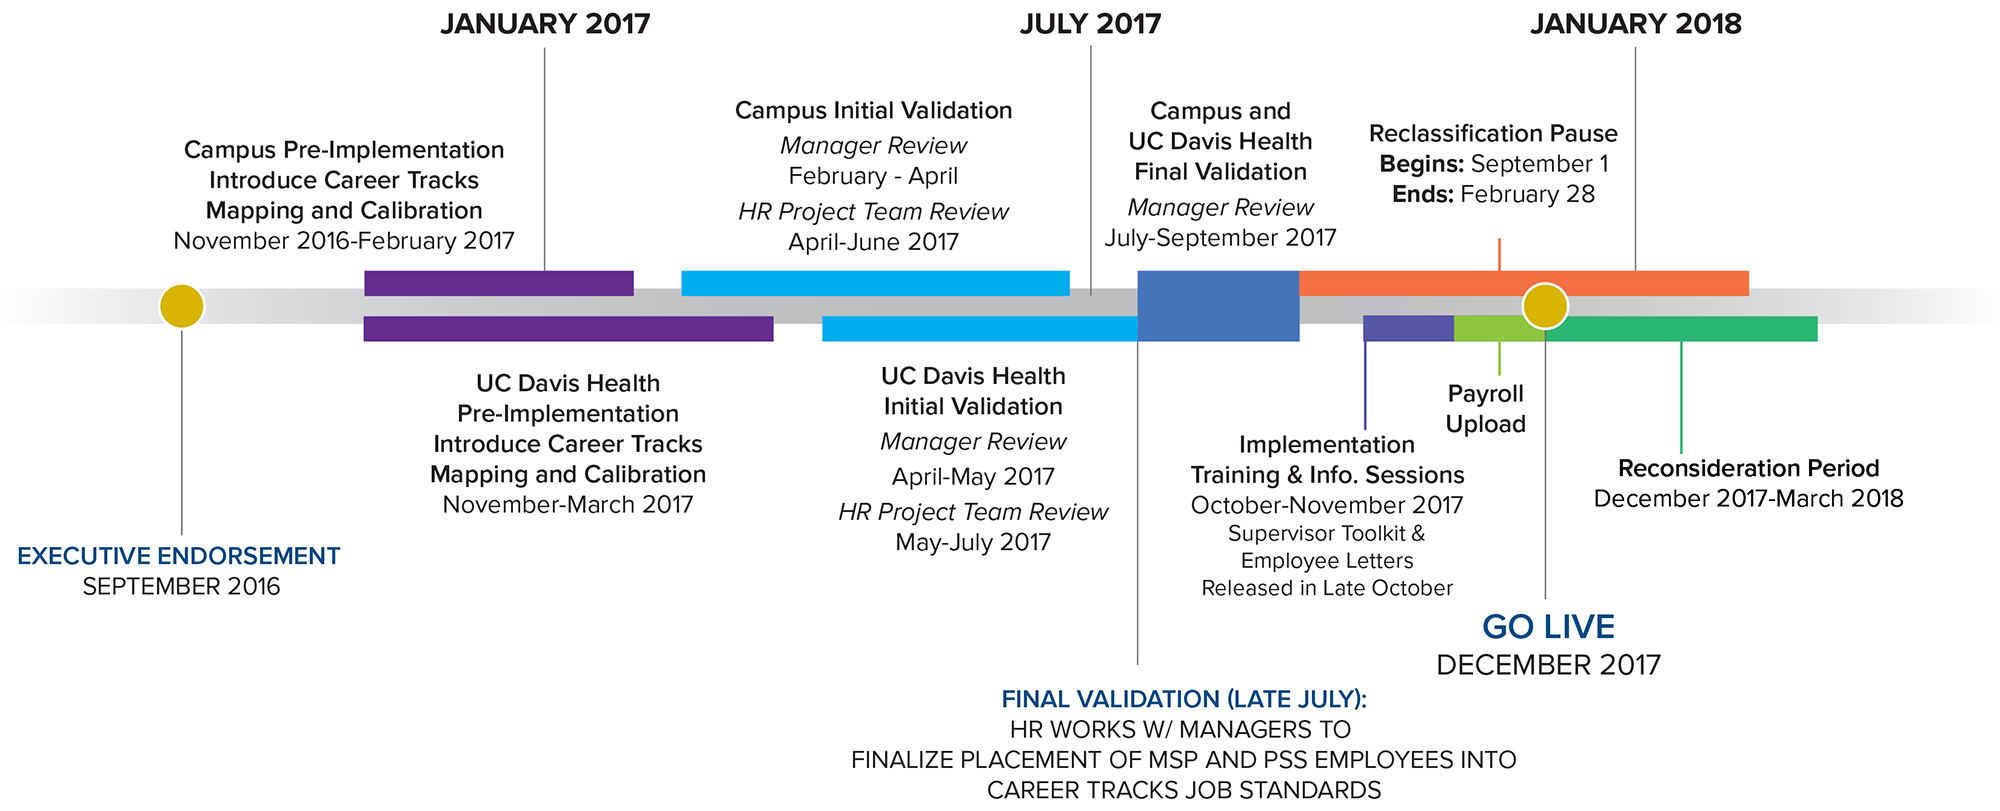 vector image of the uc davis career tracks timeline